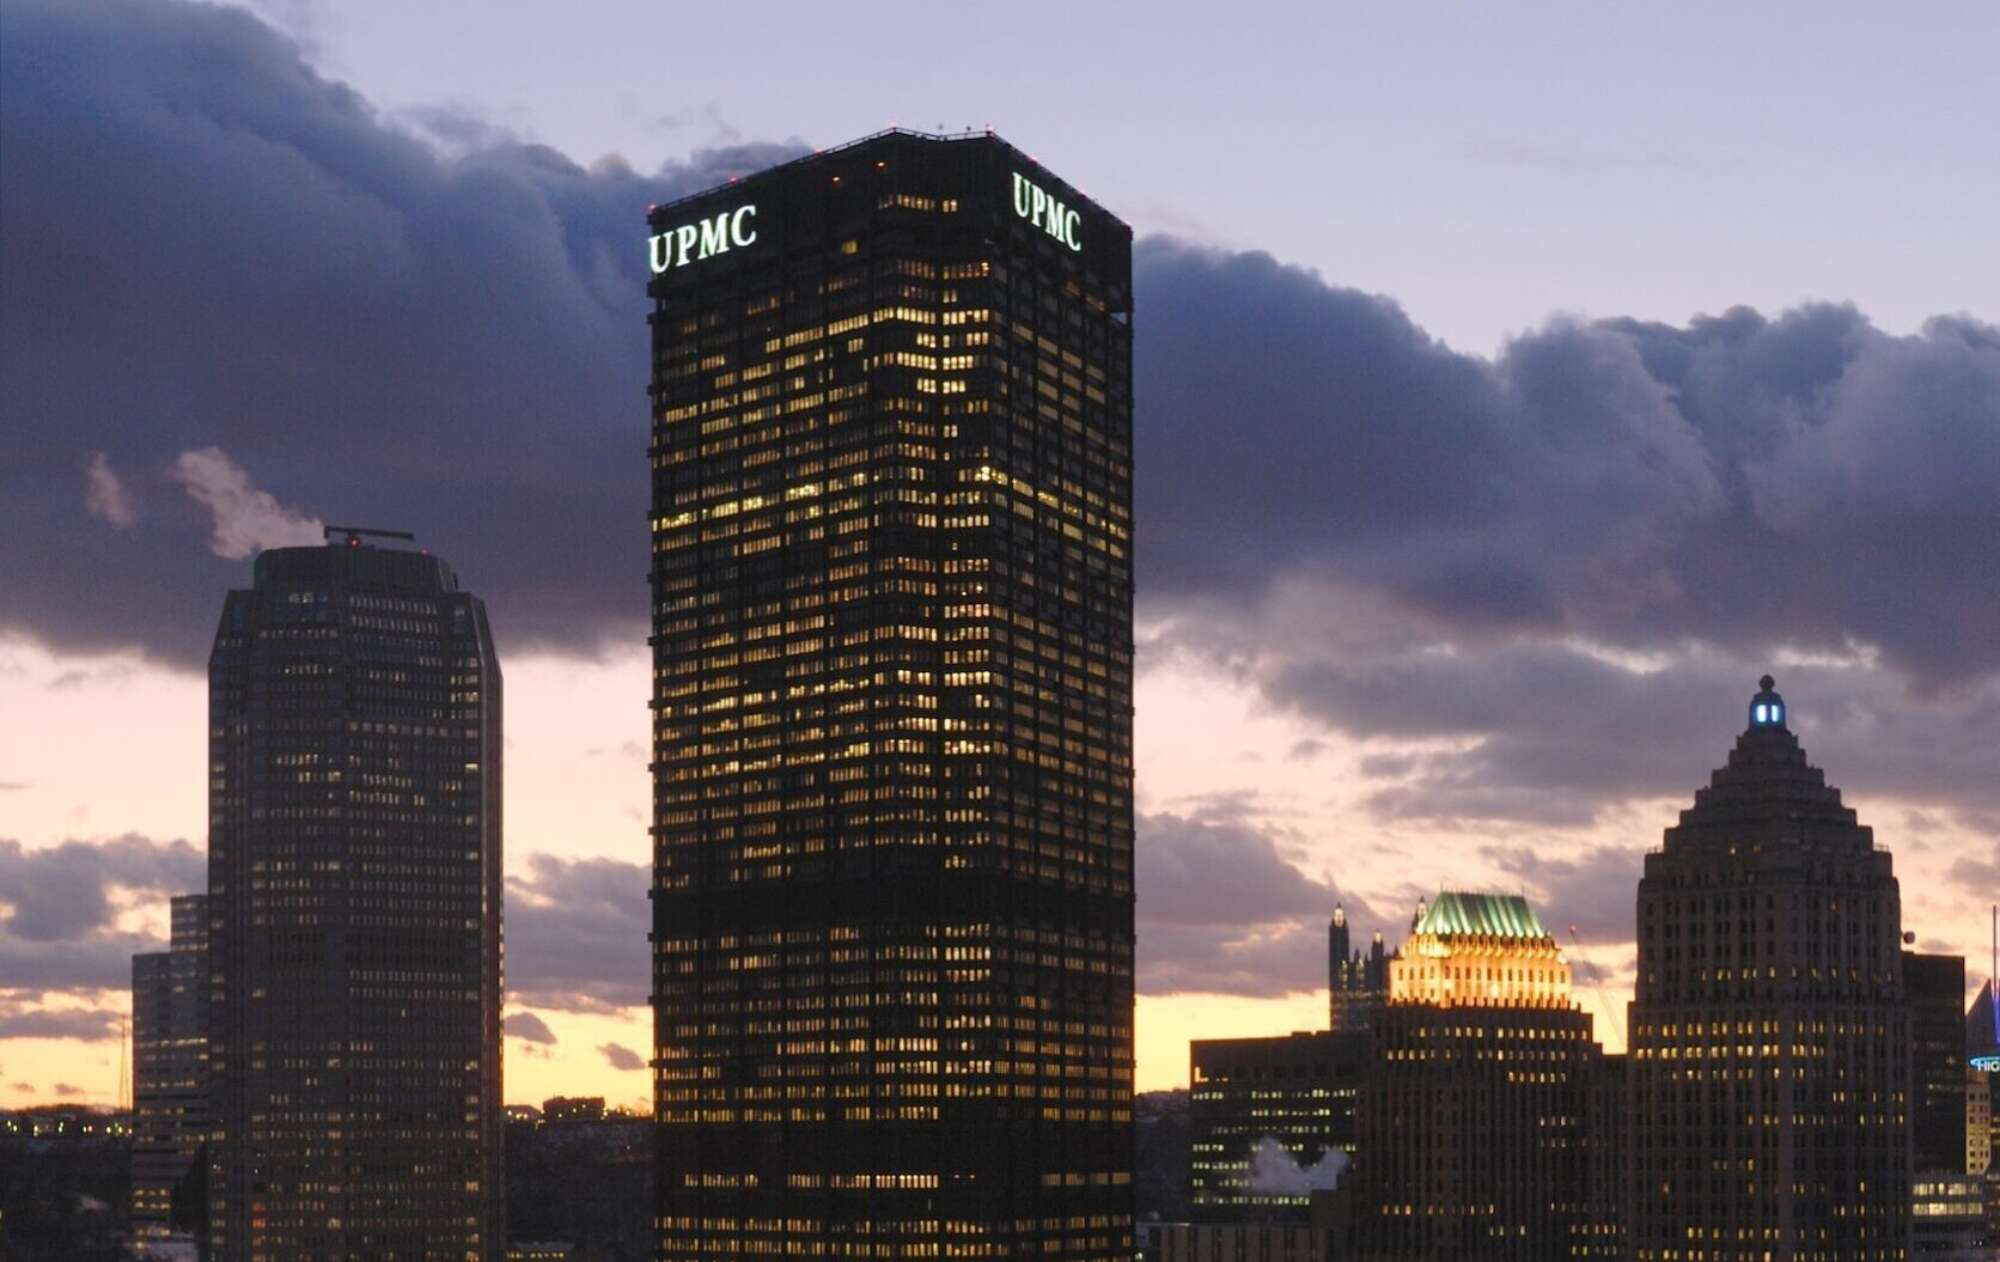 The Philadelphia skyline at sunset with The U.S. Steel Tower in the foreground